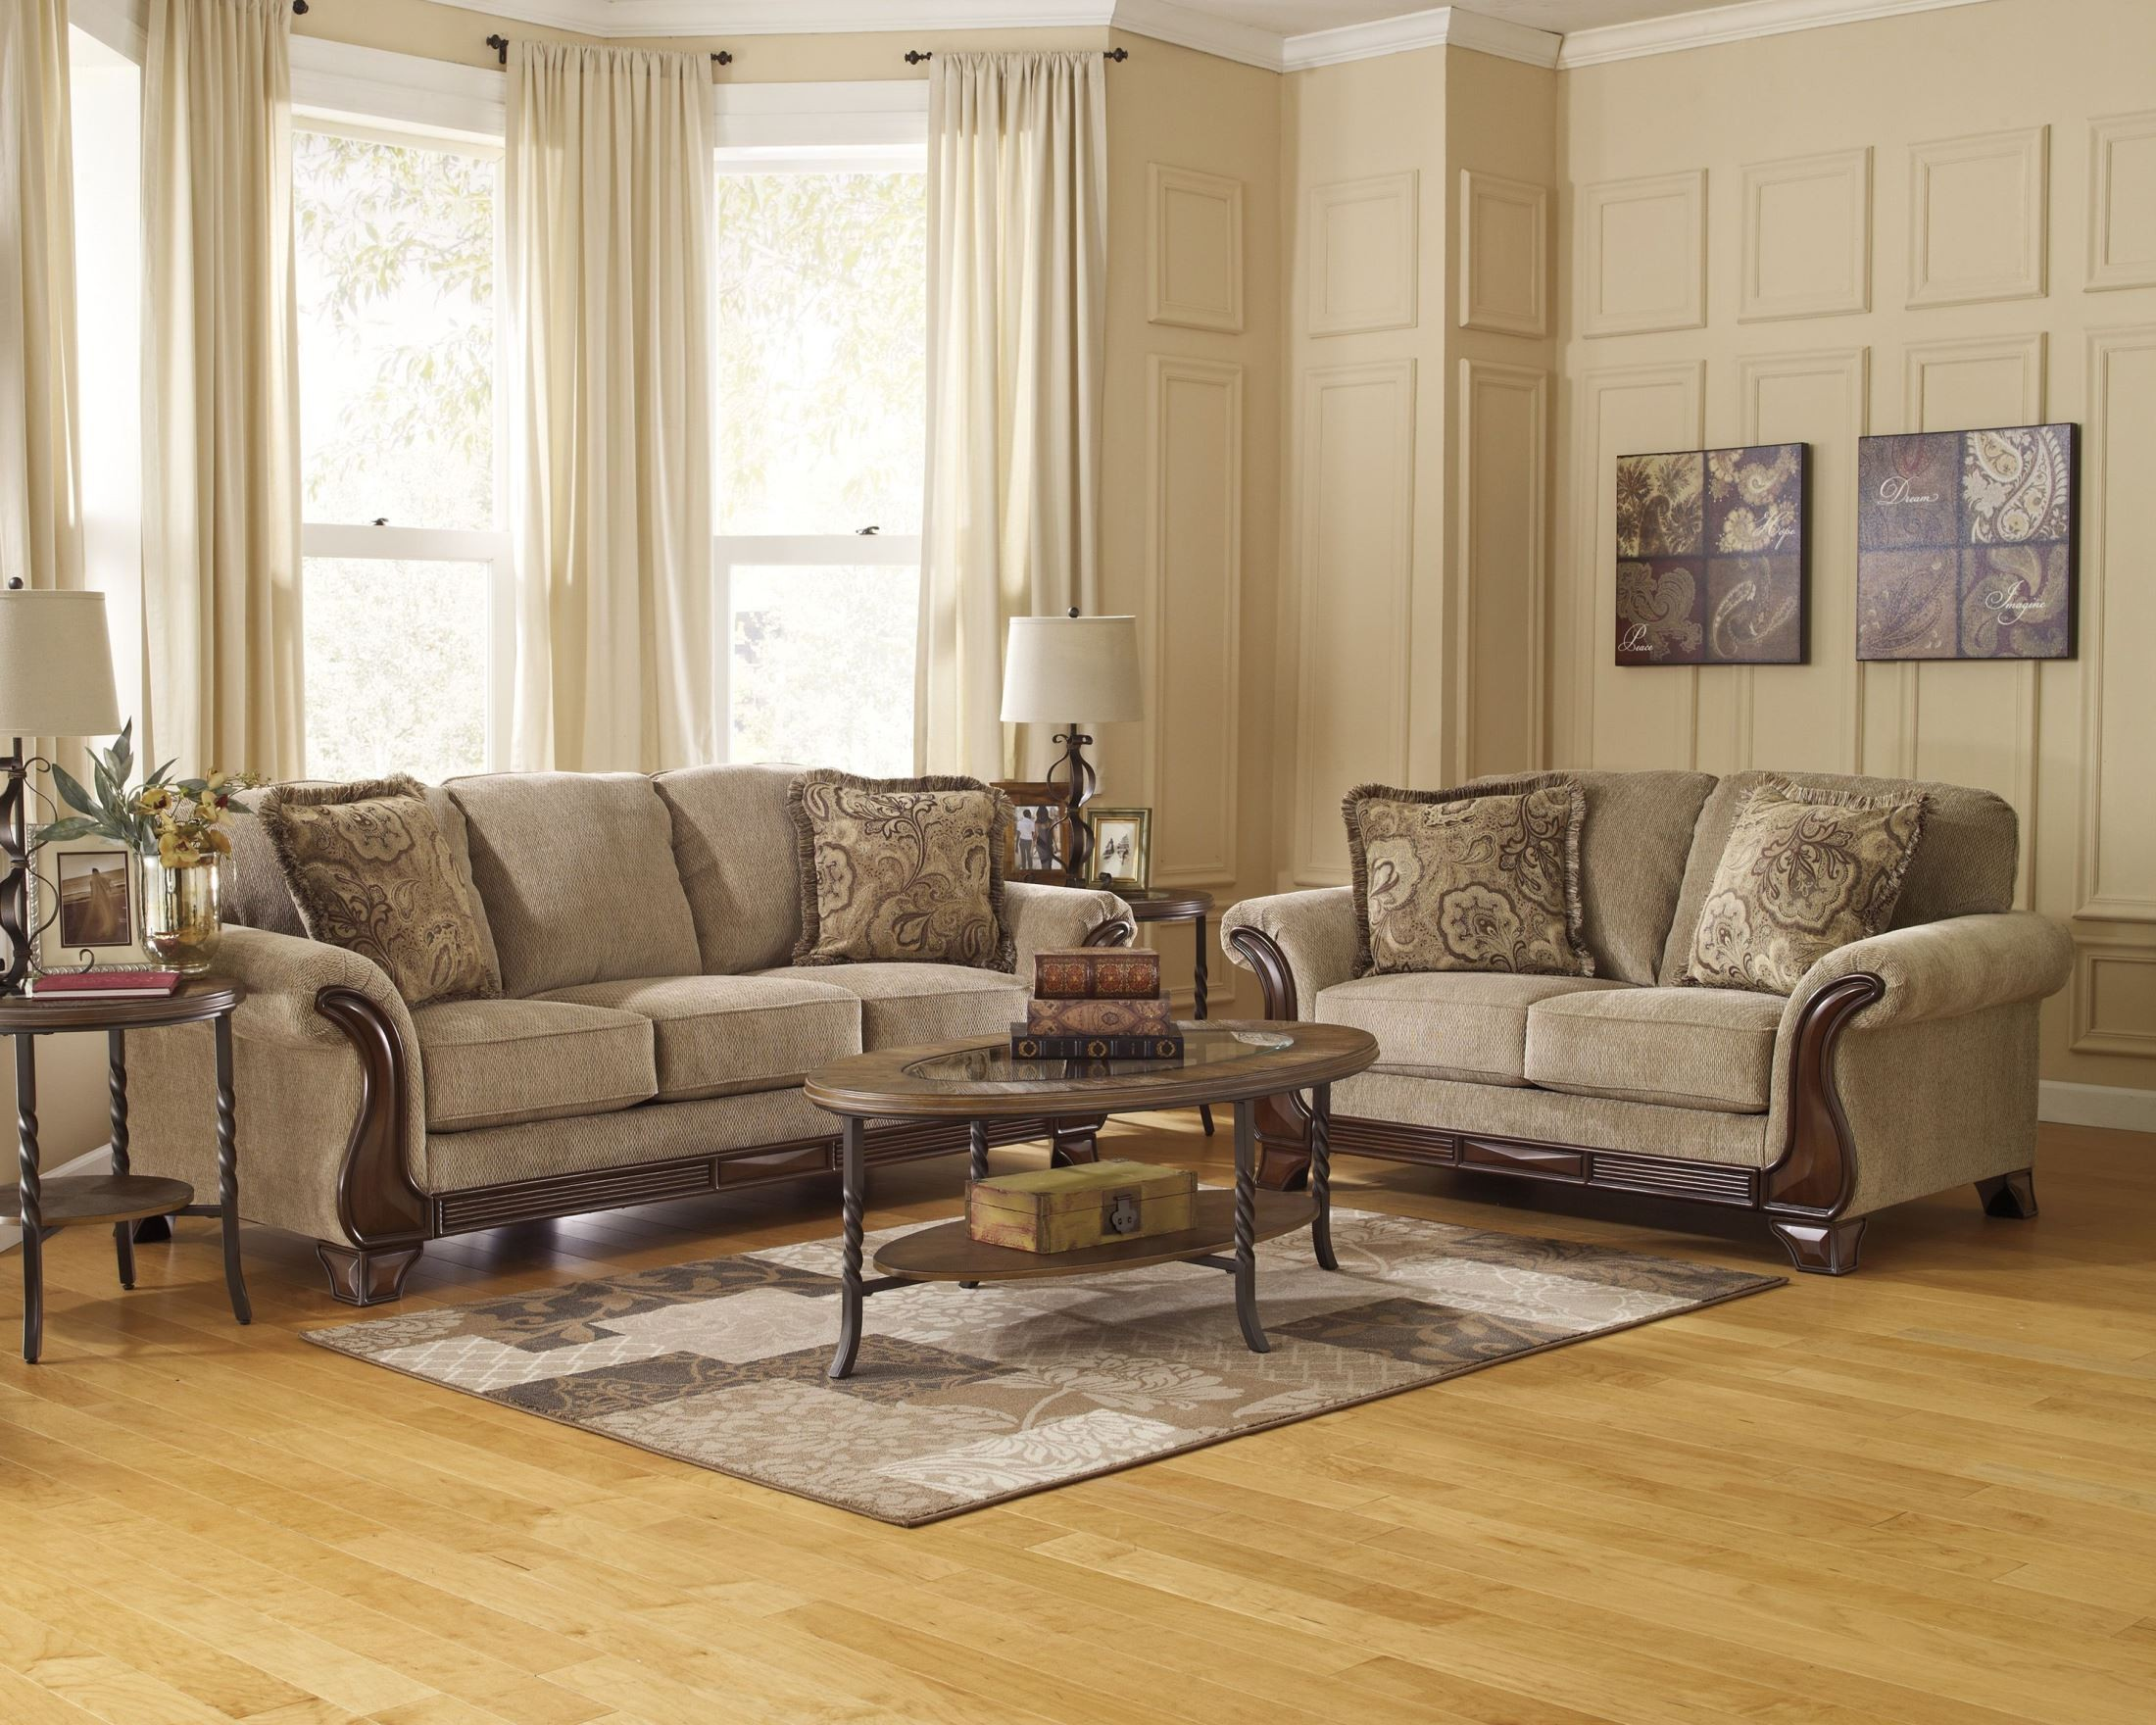 All Modern Sofa And Loveseat Set